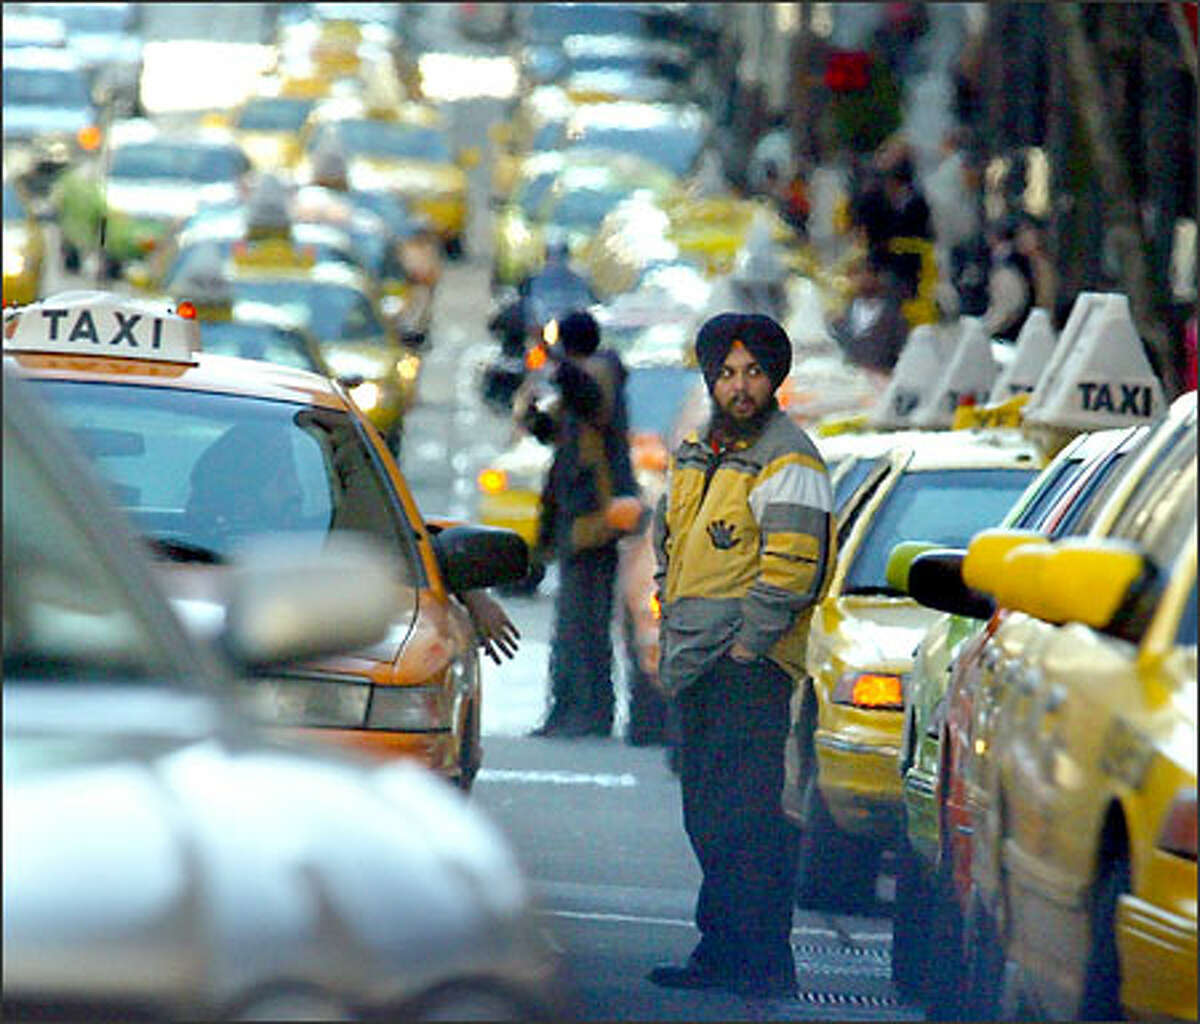 A cabbie stands on Fourth Avenue as other drivers move through the downtown area honking their horns to bring attention to their safety needs.